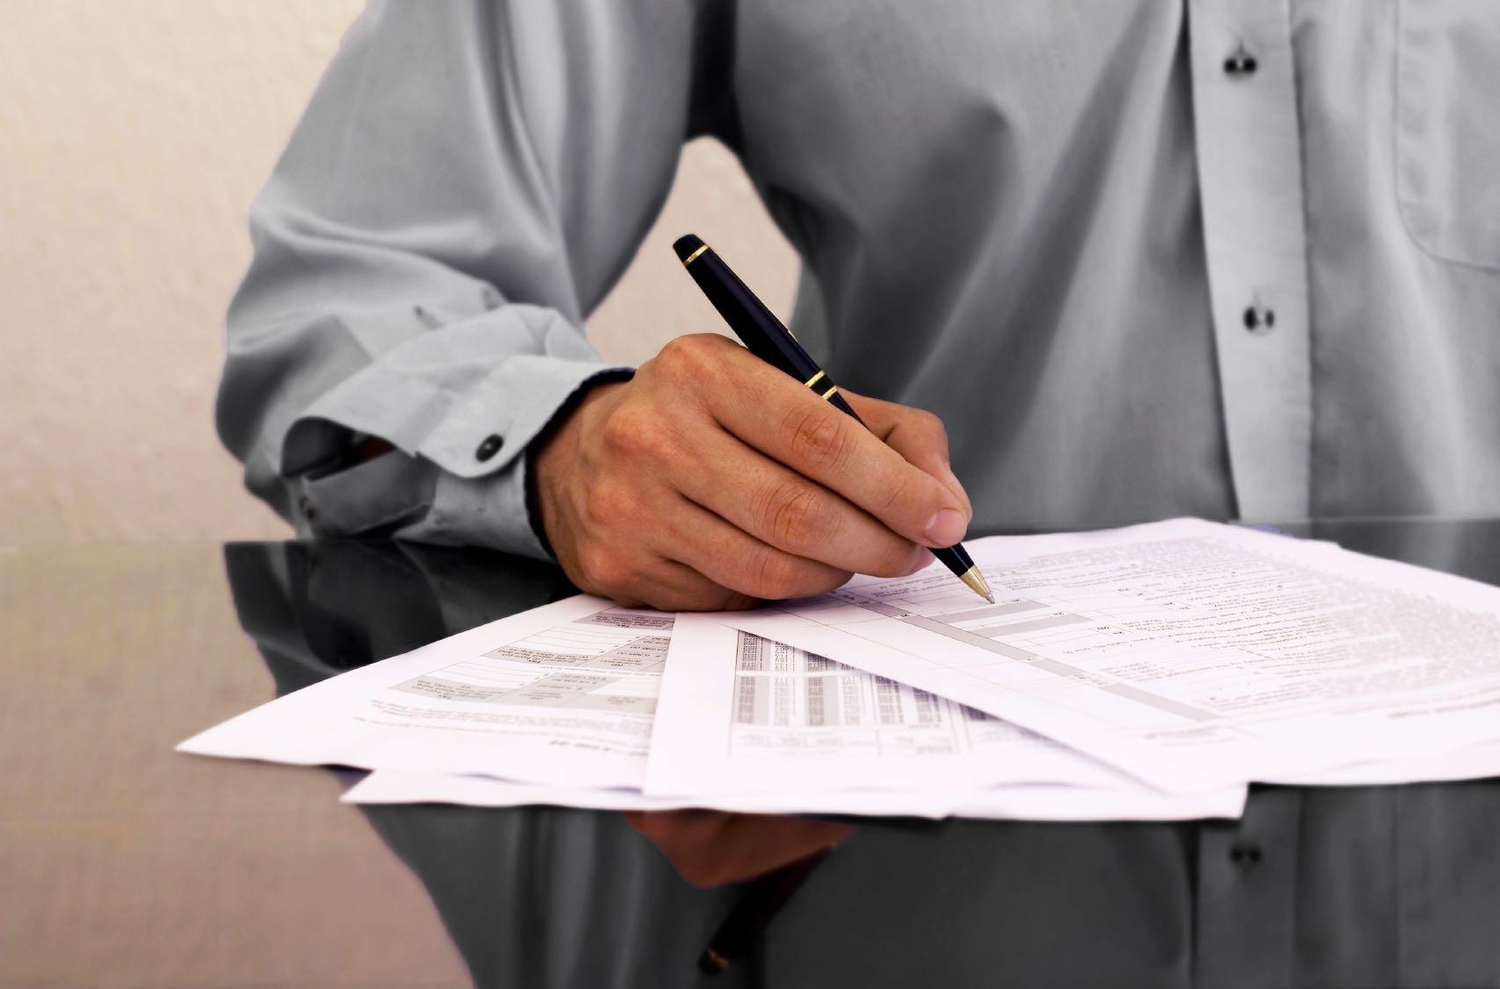 Man auditing financial statements